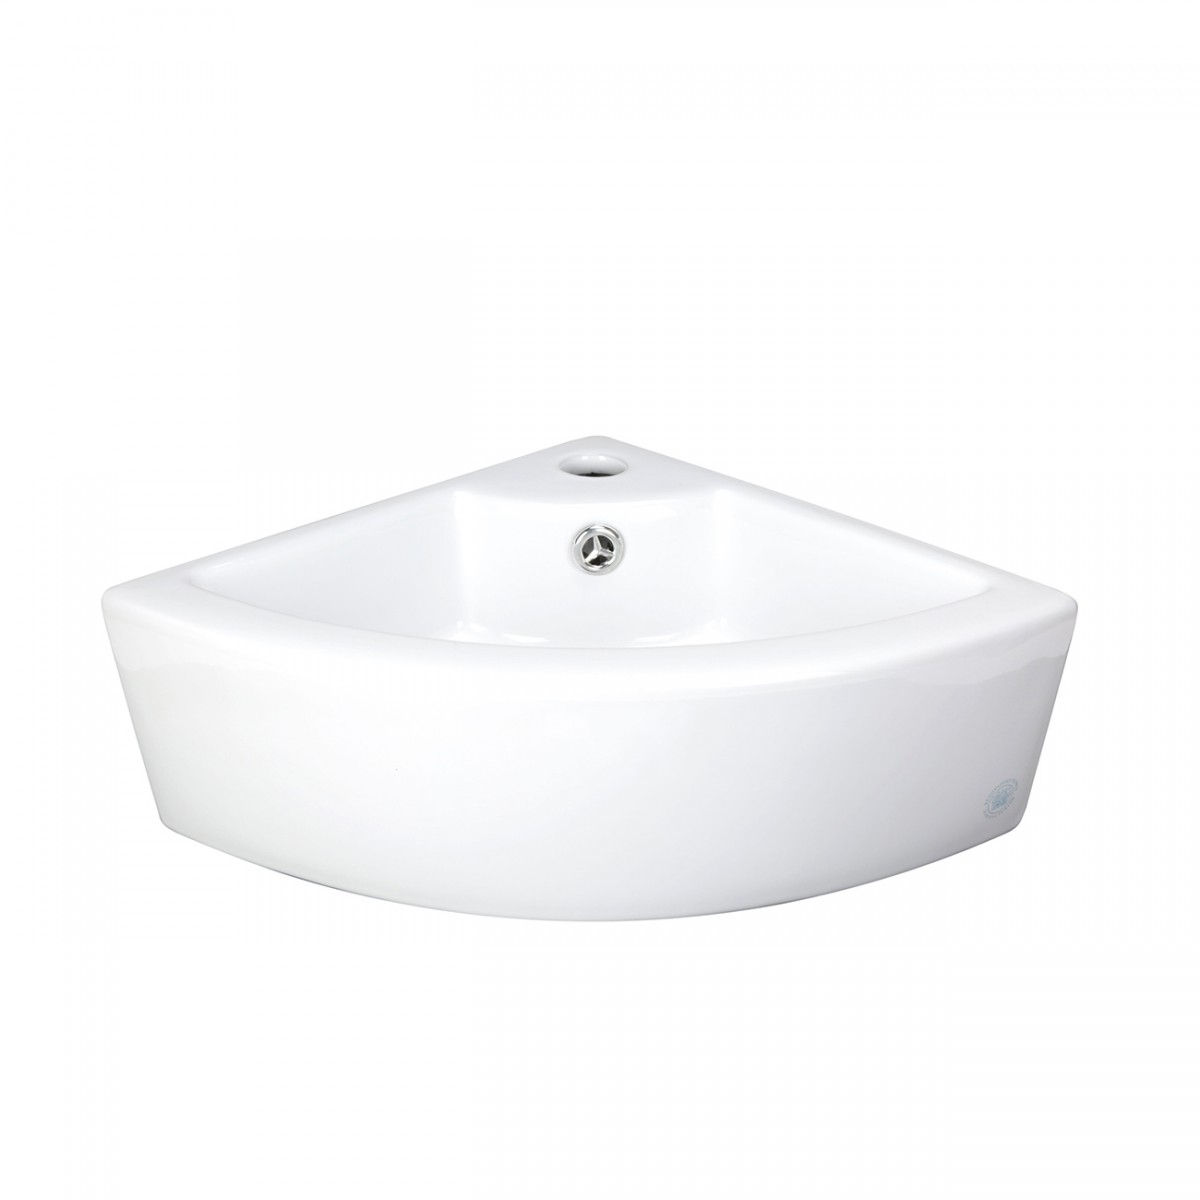 Bathroom Triangle Small White Corner Vessel Sink Above